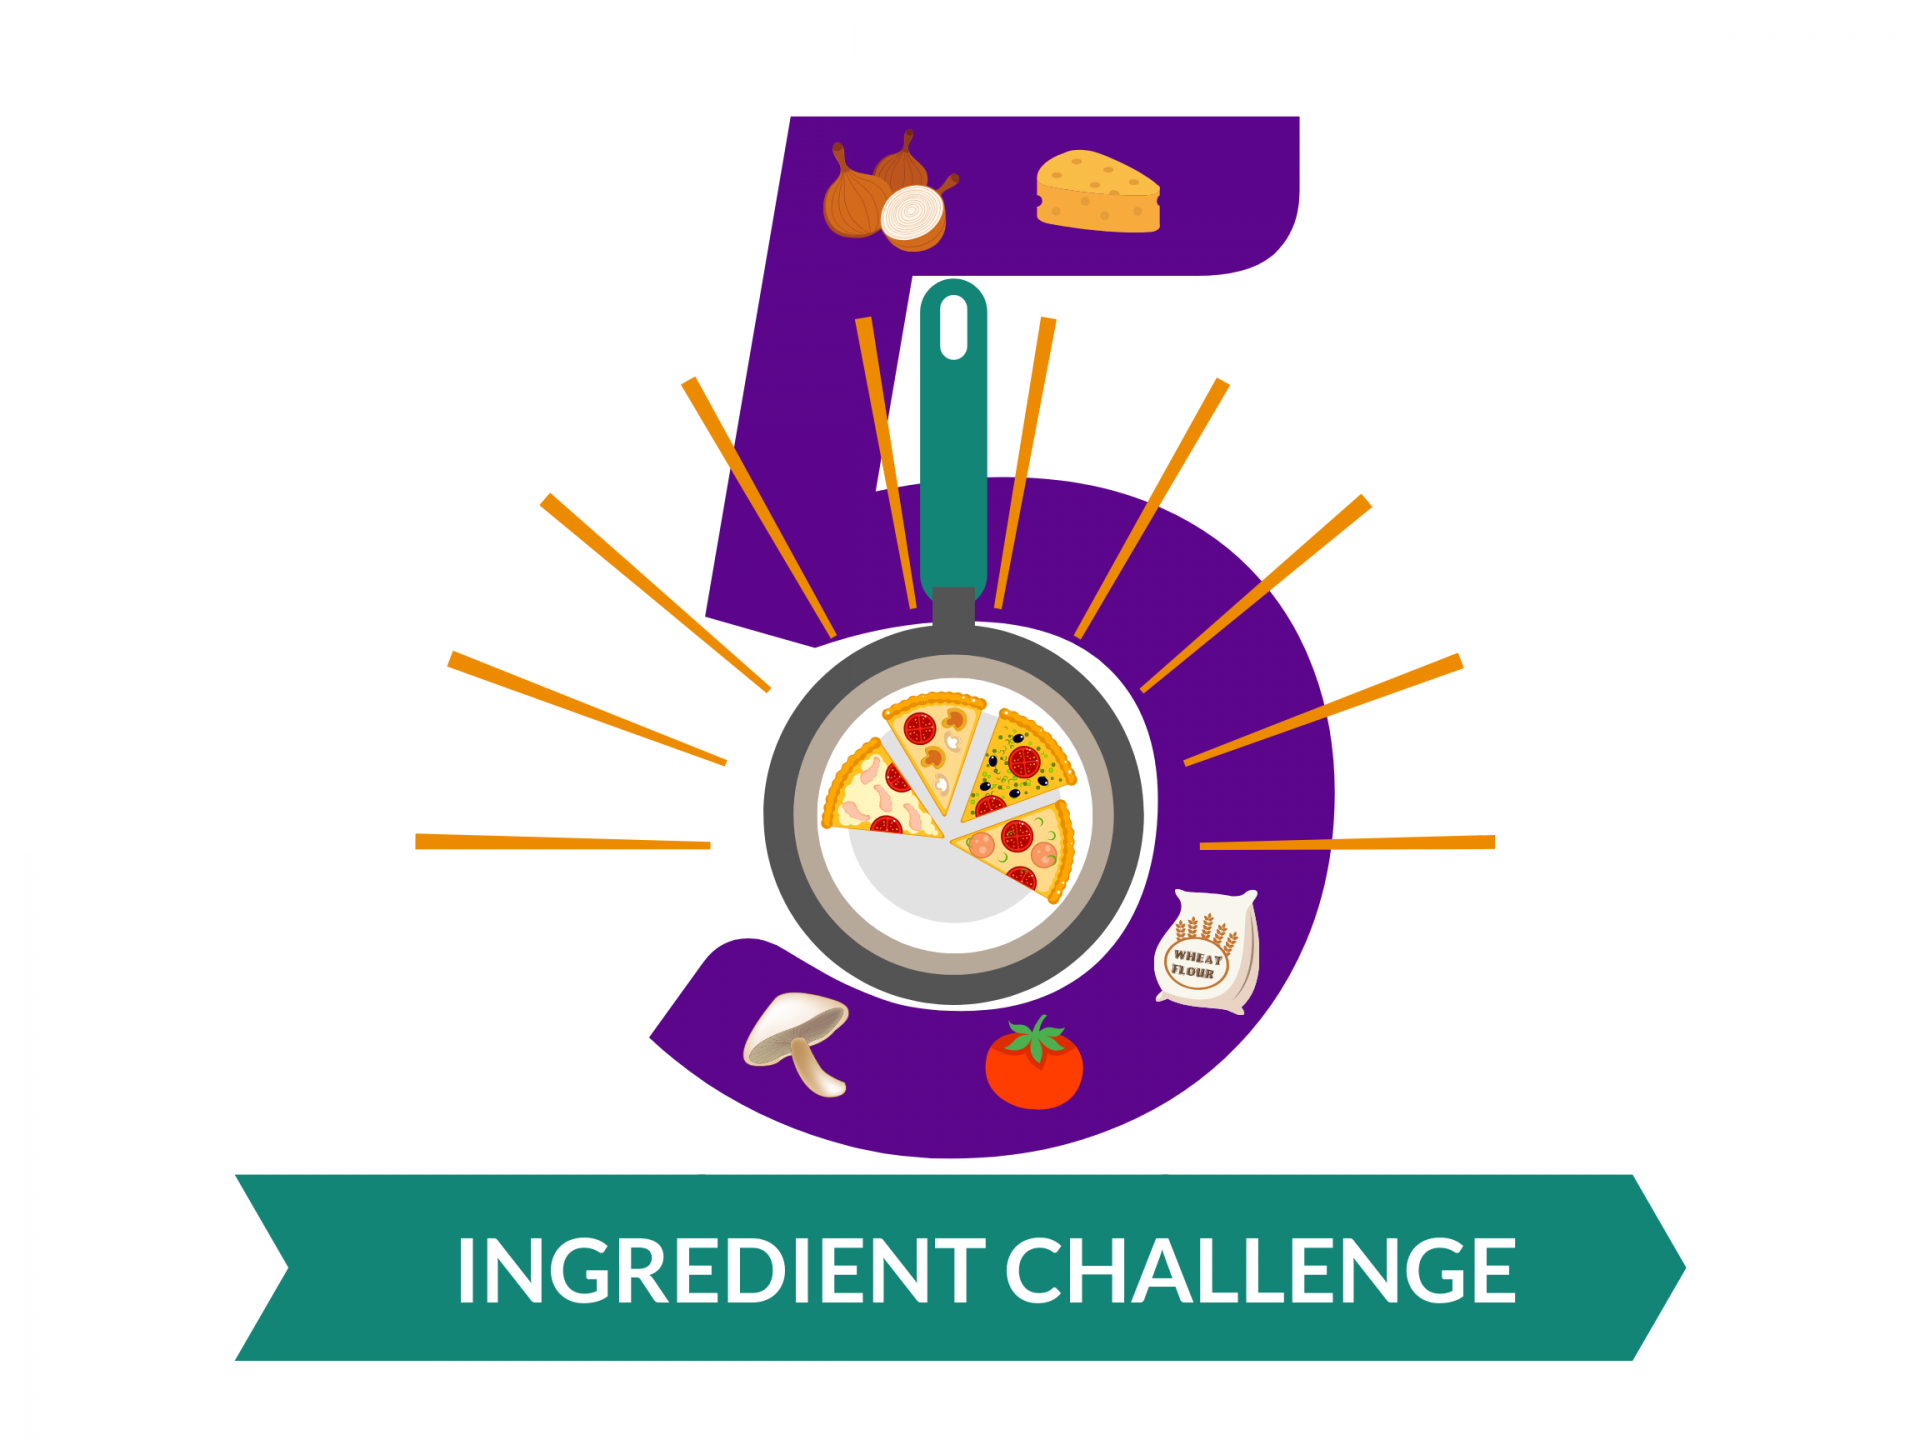 5 ingredient challenge